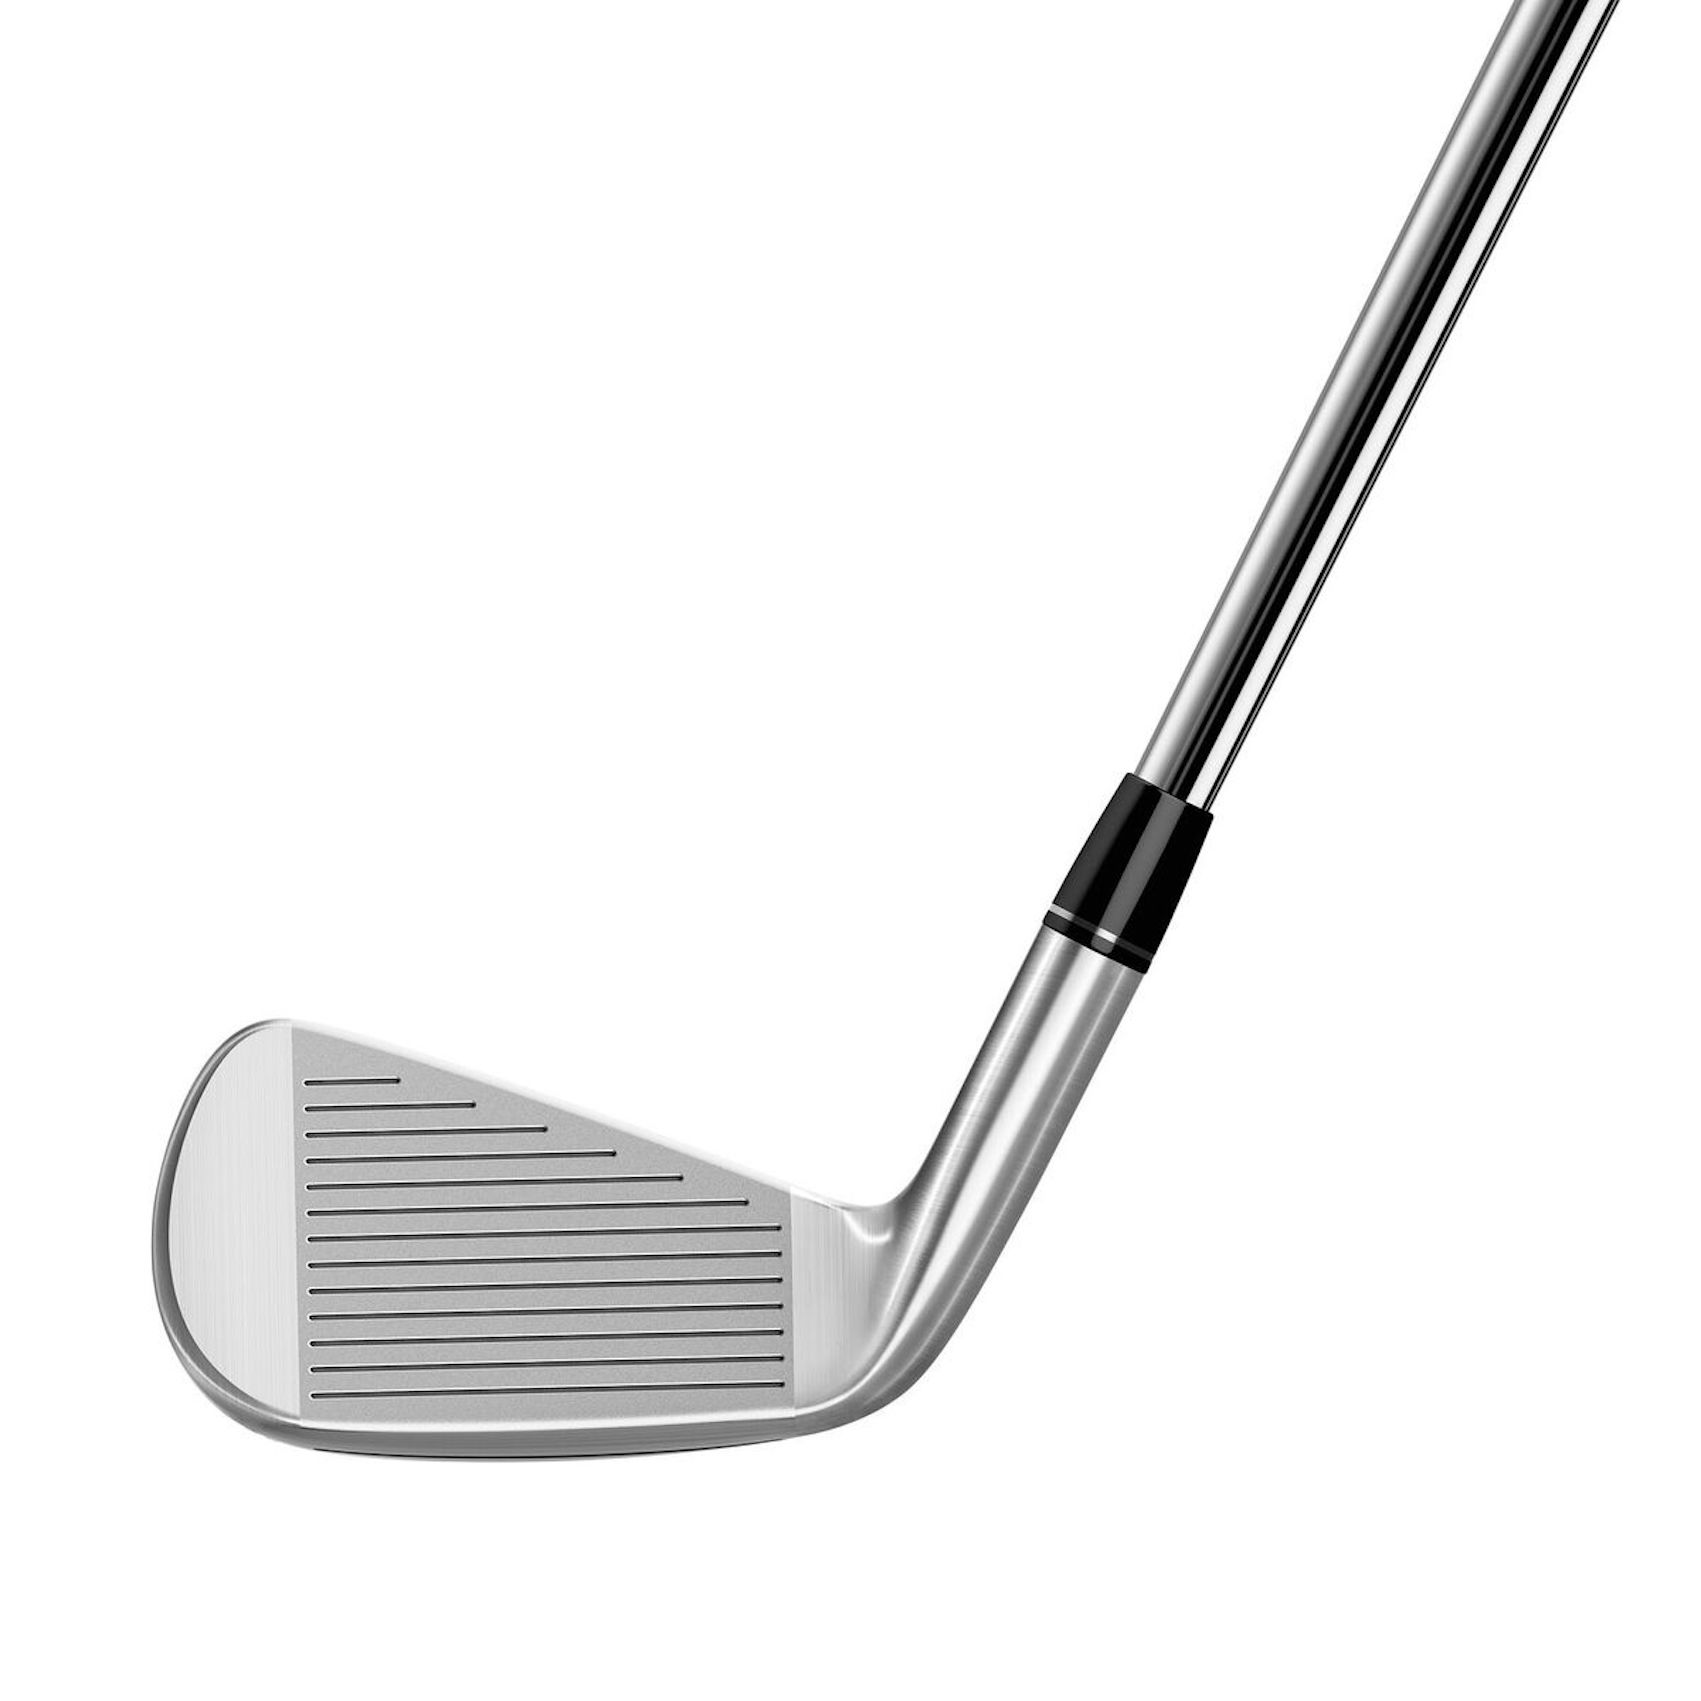 TaylorMade P790, 5-PW, Stål, Herre